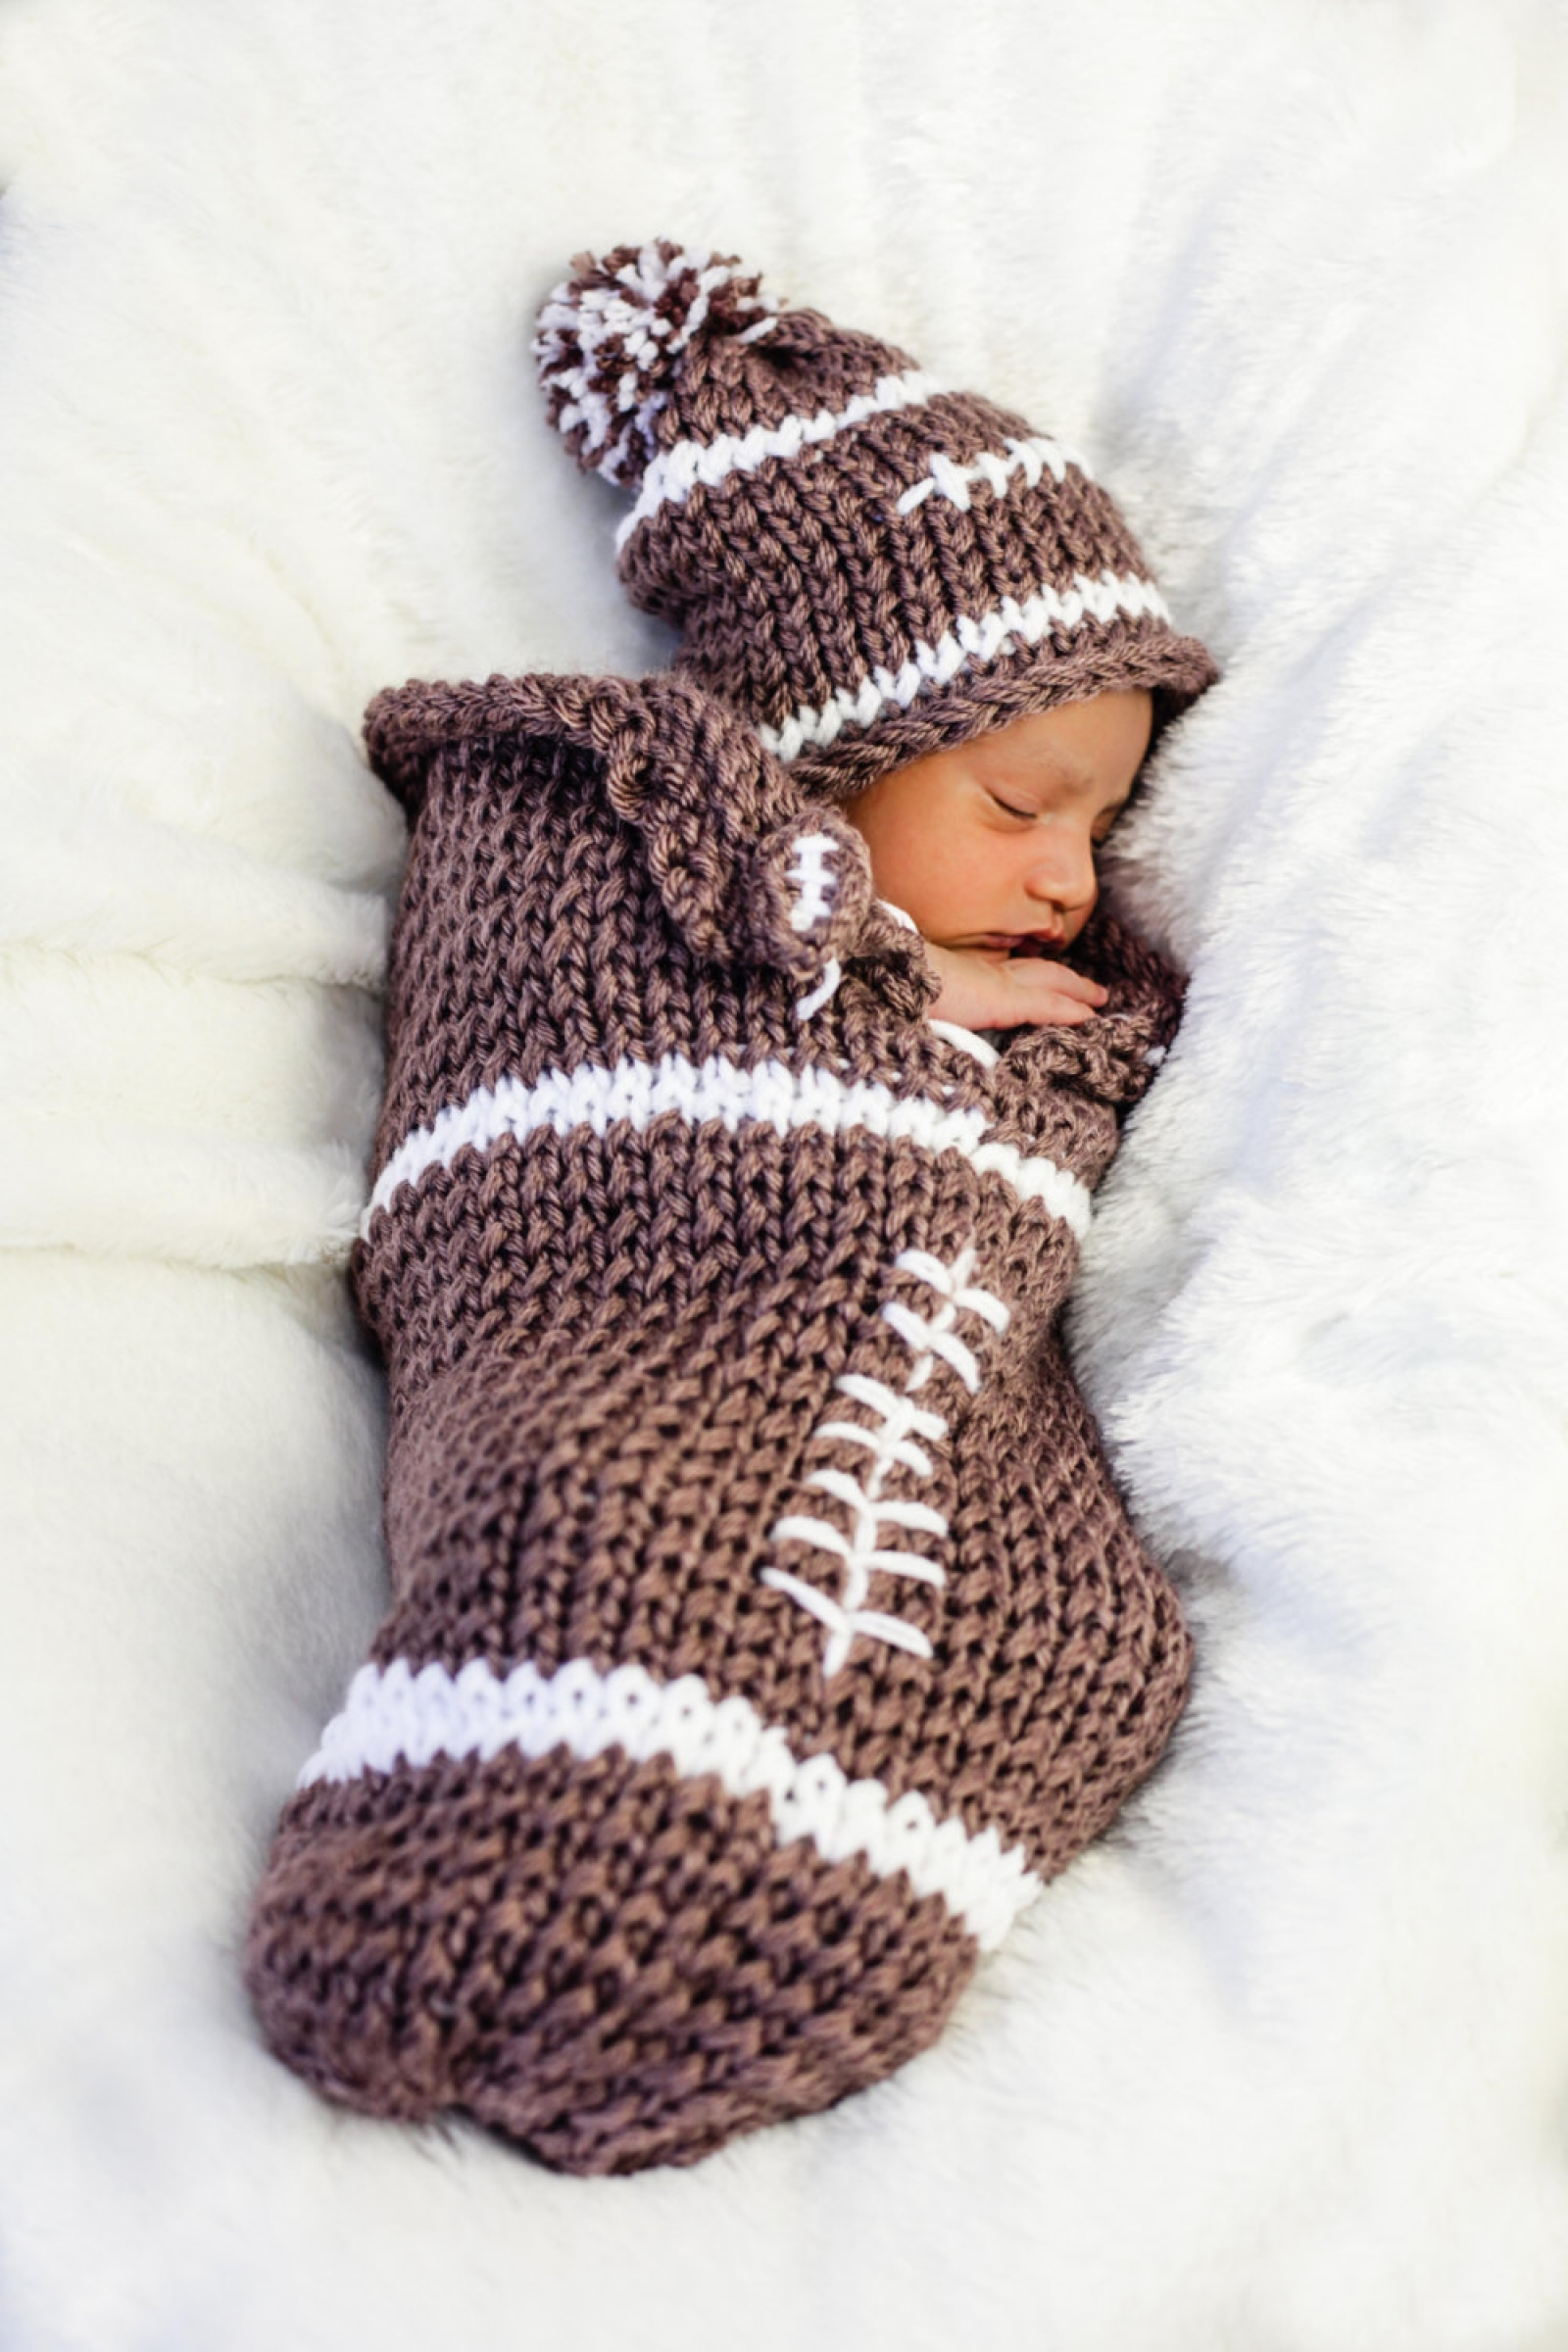 LOOM KNIT NEWBORN COCOON PATTERN, LOOM KNIT HAT PATTERN LOOM KNIT BOOT This...